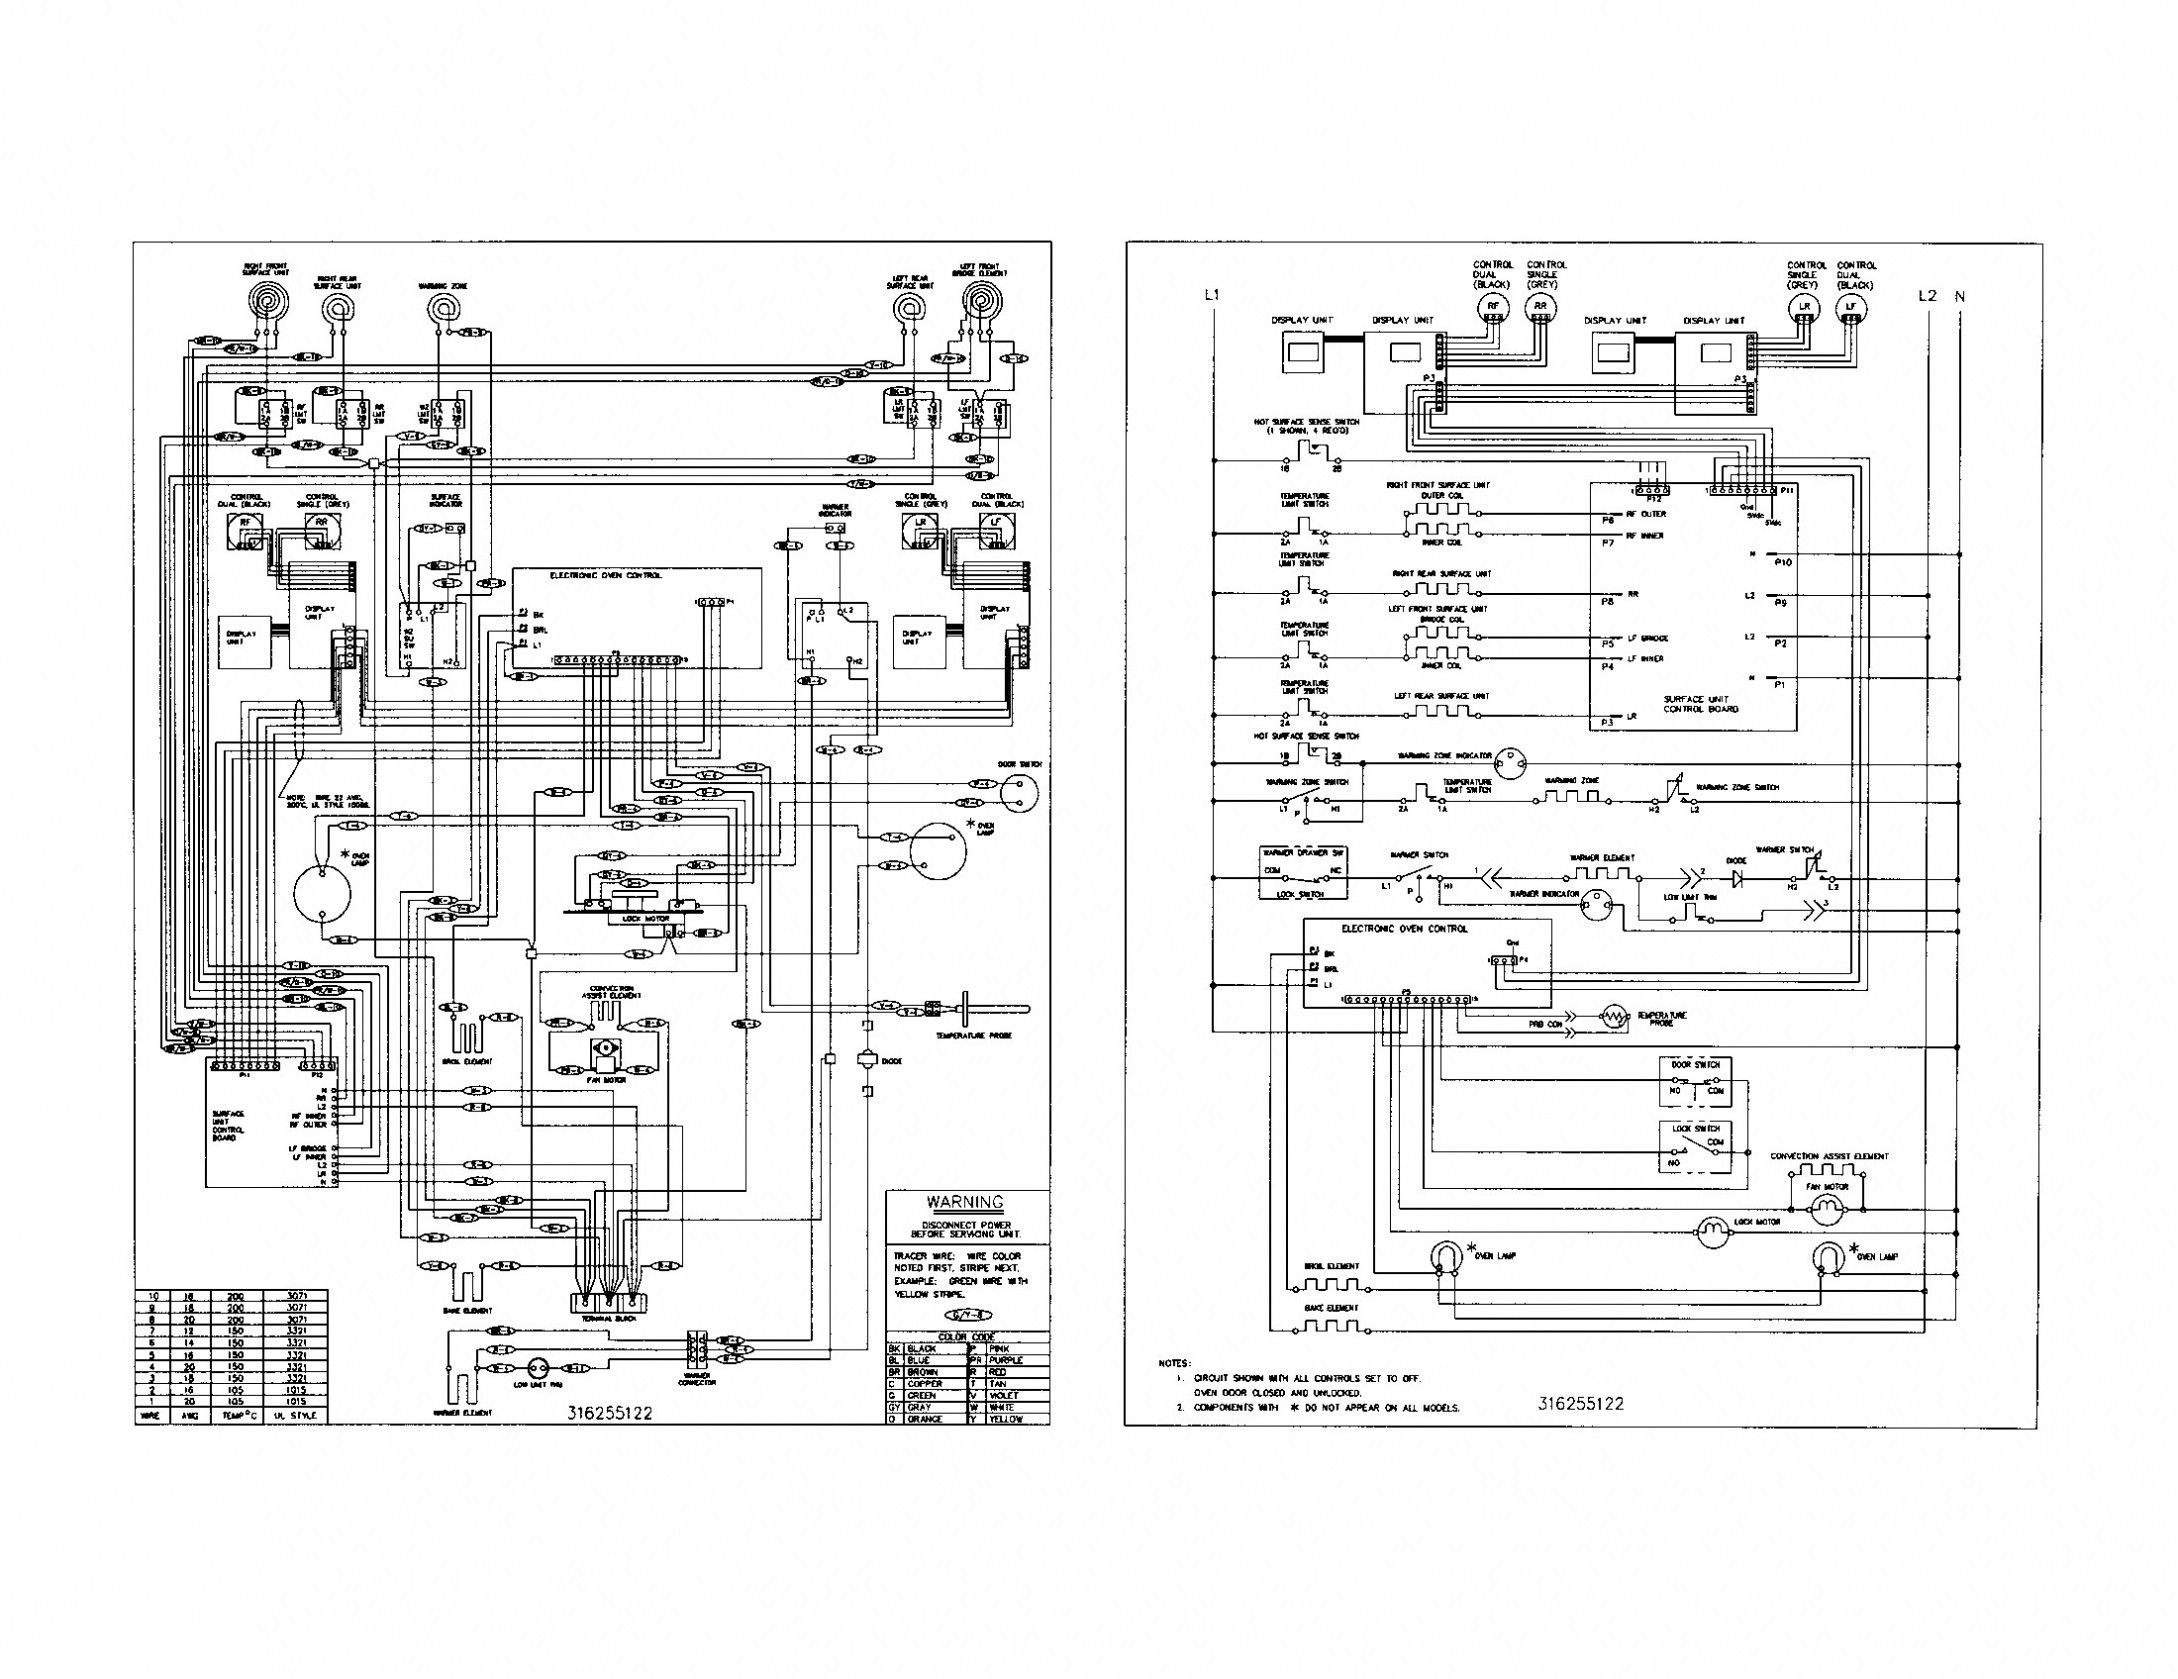 Unique Wiring Diagram For A Gfci Outlet